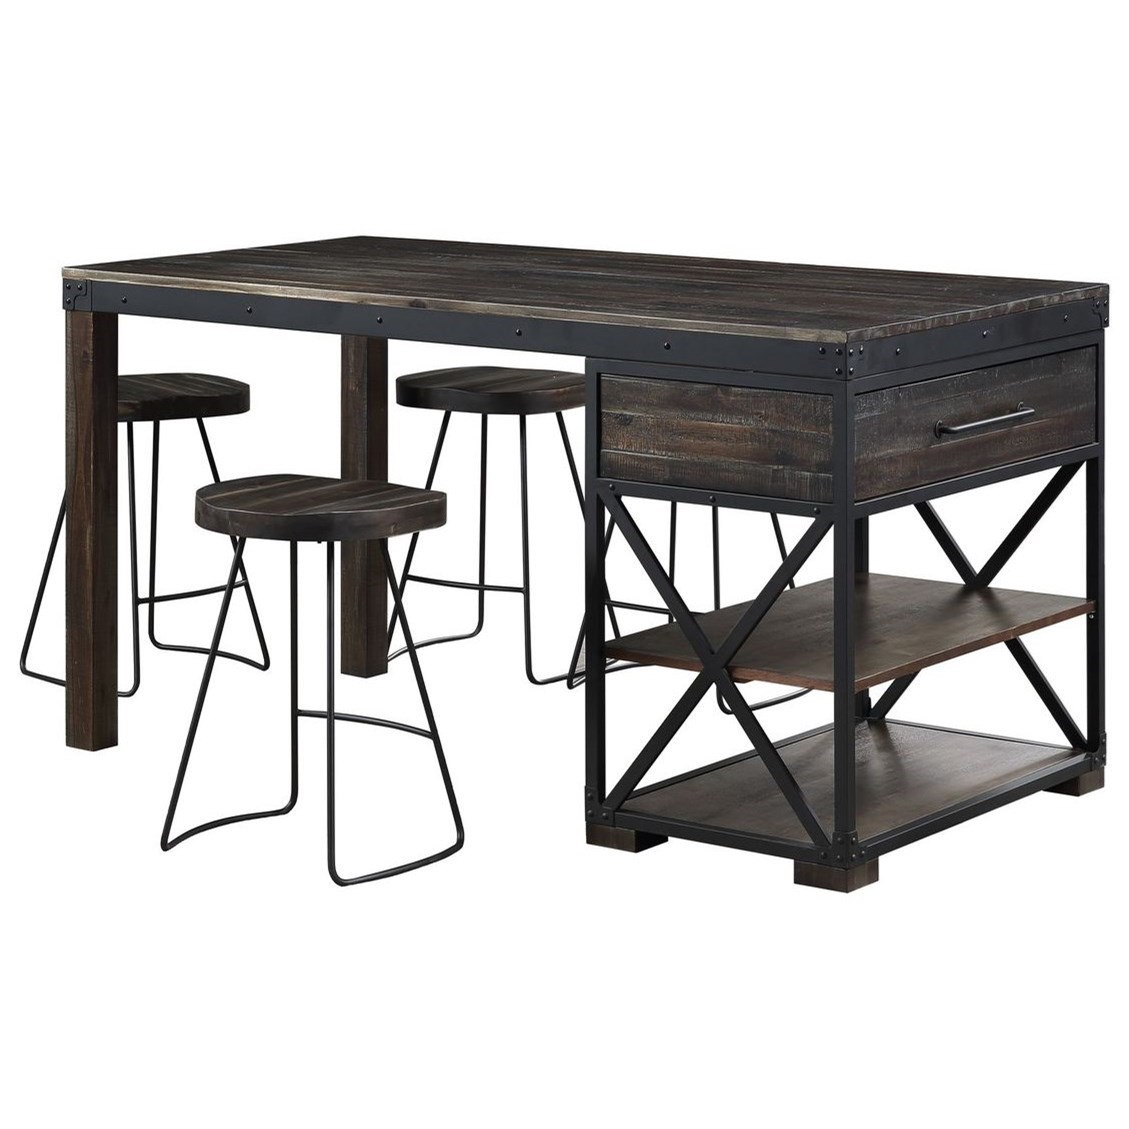 Canyon Ridge 5-Piece Counter Height Table and Stool Set by Coast to Coast Imports at Baer's Furniture